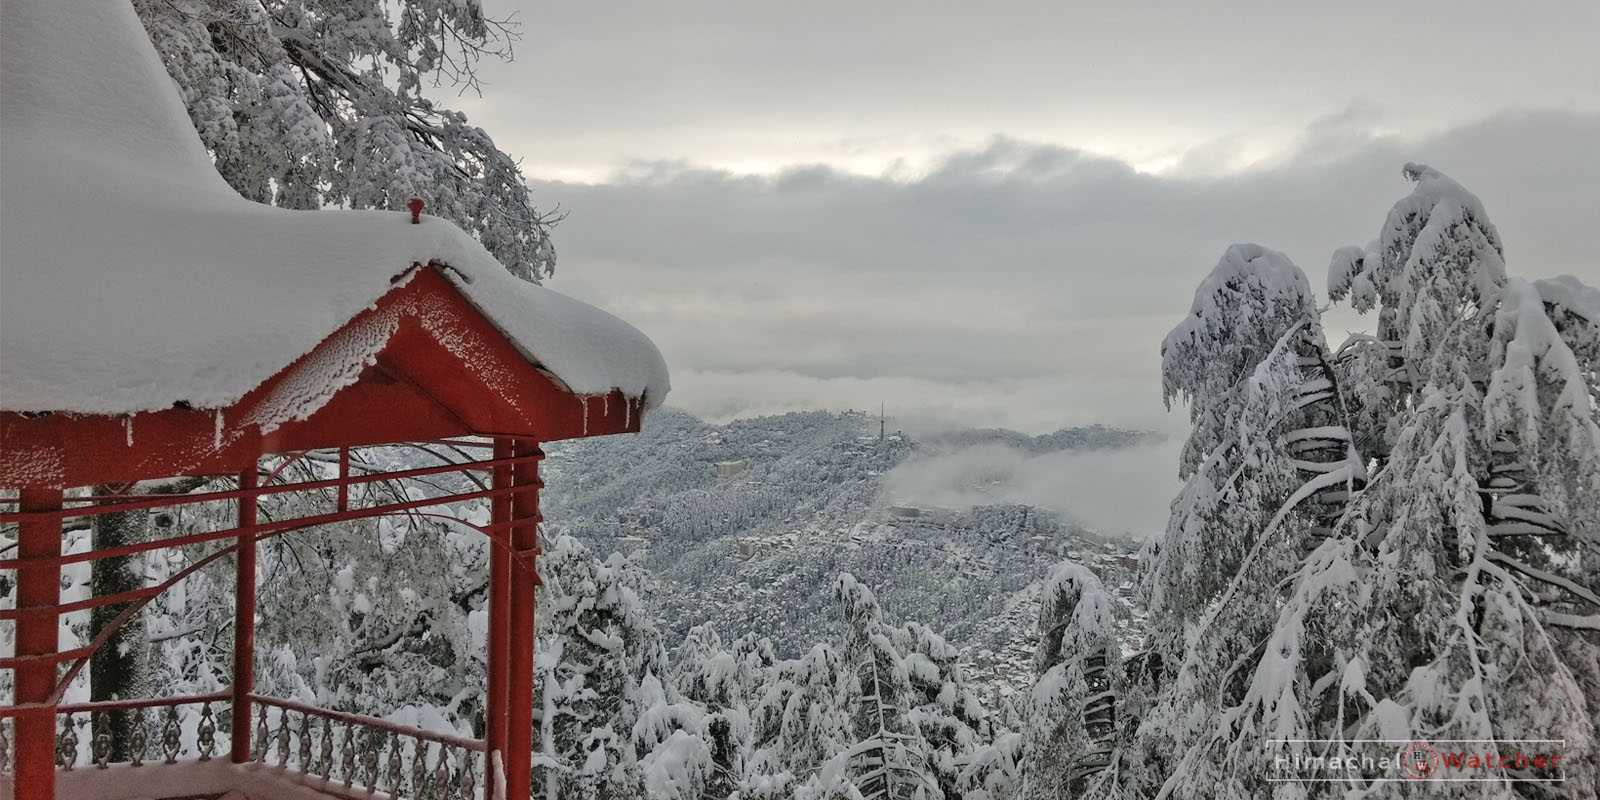 Snow prediction for shimla 2020